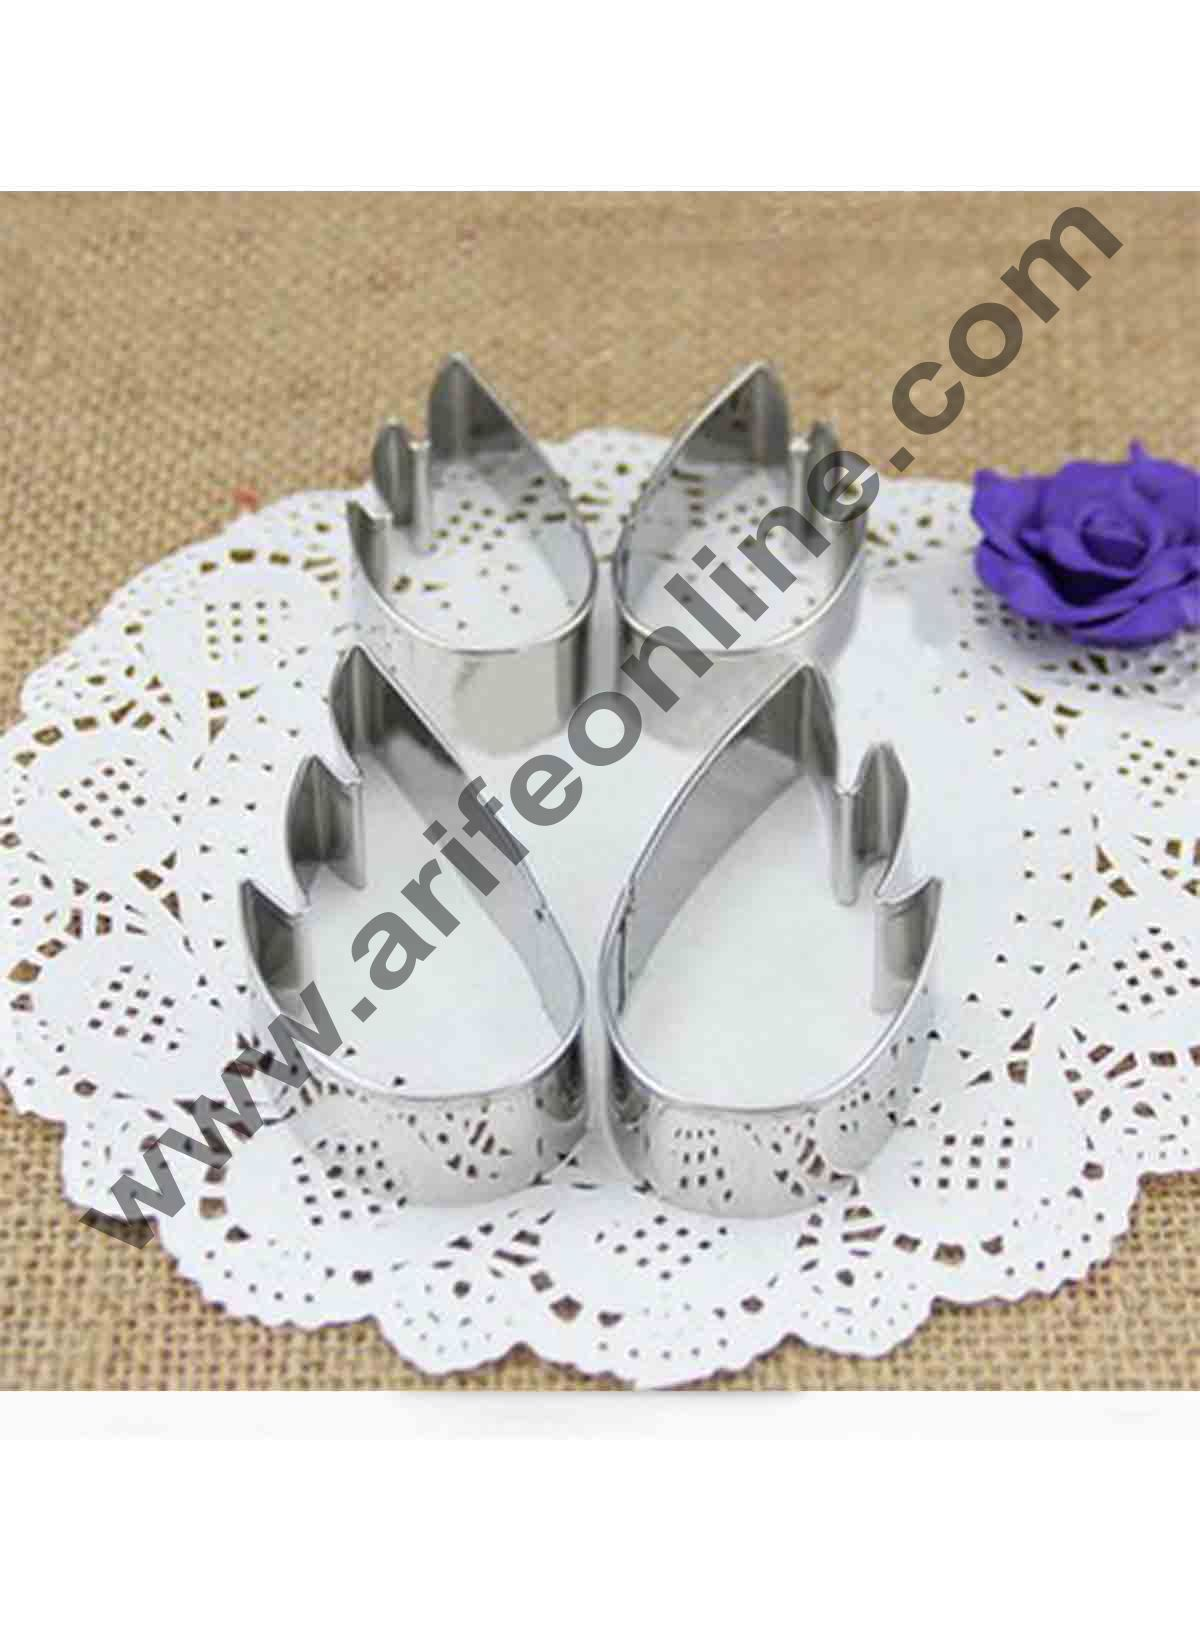 Cake Decor Angel Wings Stainless Steel Cookie Cutter, Cutter Bakeware Mould Biscuit Mould Set Sugar Arts Fondant Cake Decoration Tools